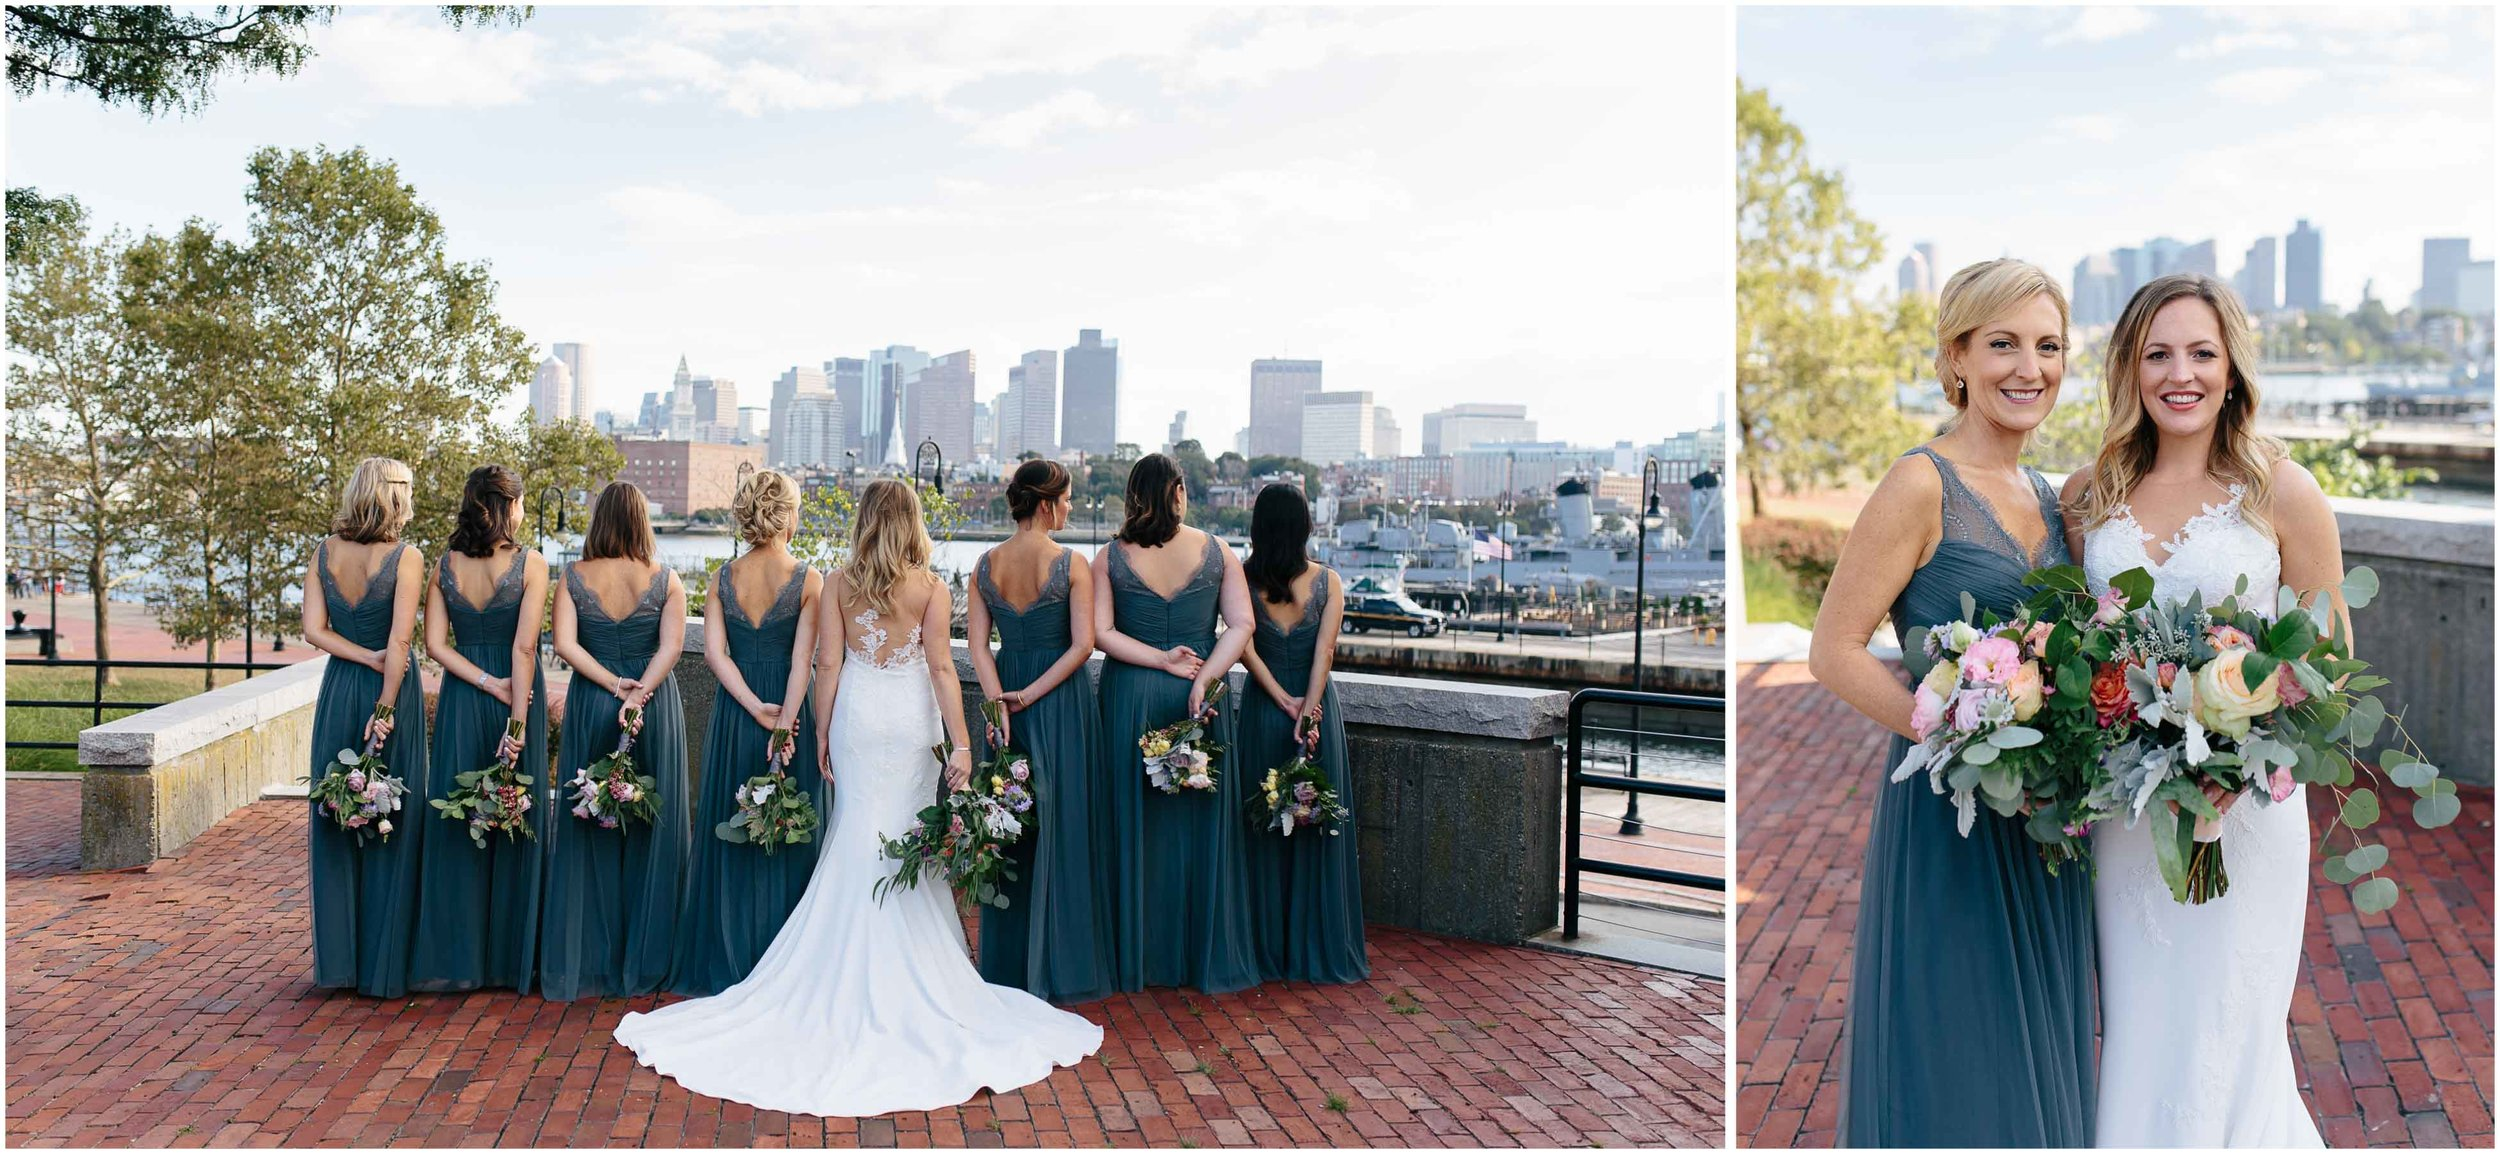 Nautical Massachusetts Jewish Wedding in the Boston Navy Yard bride and bridesmaids